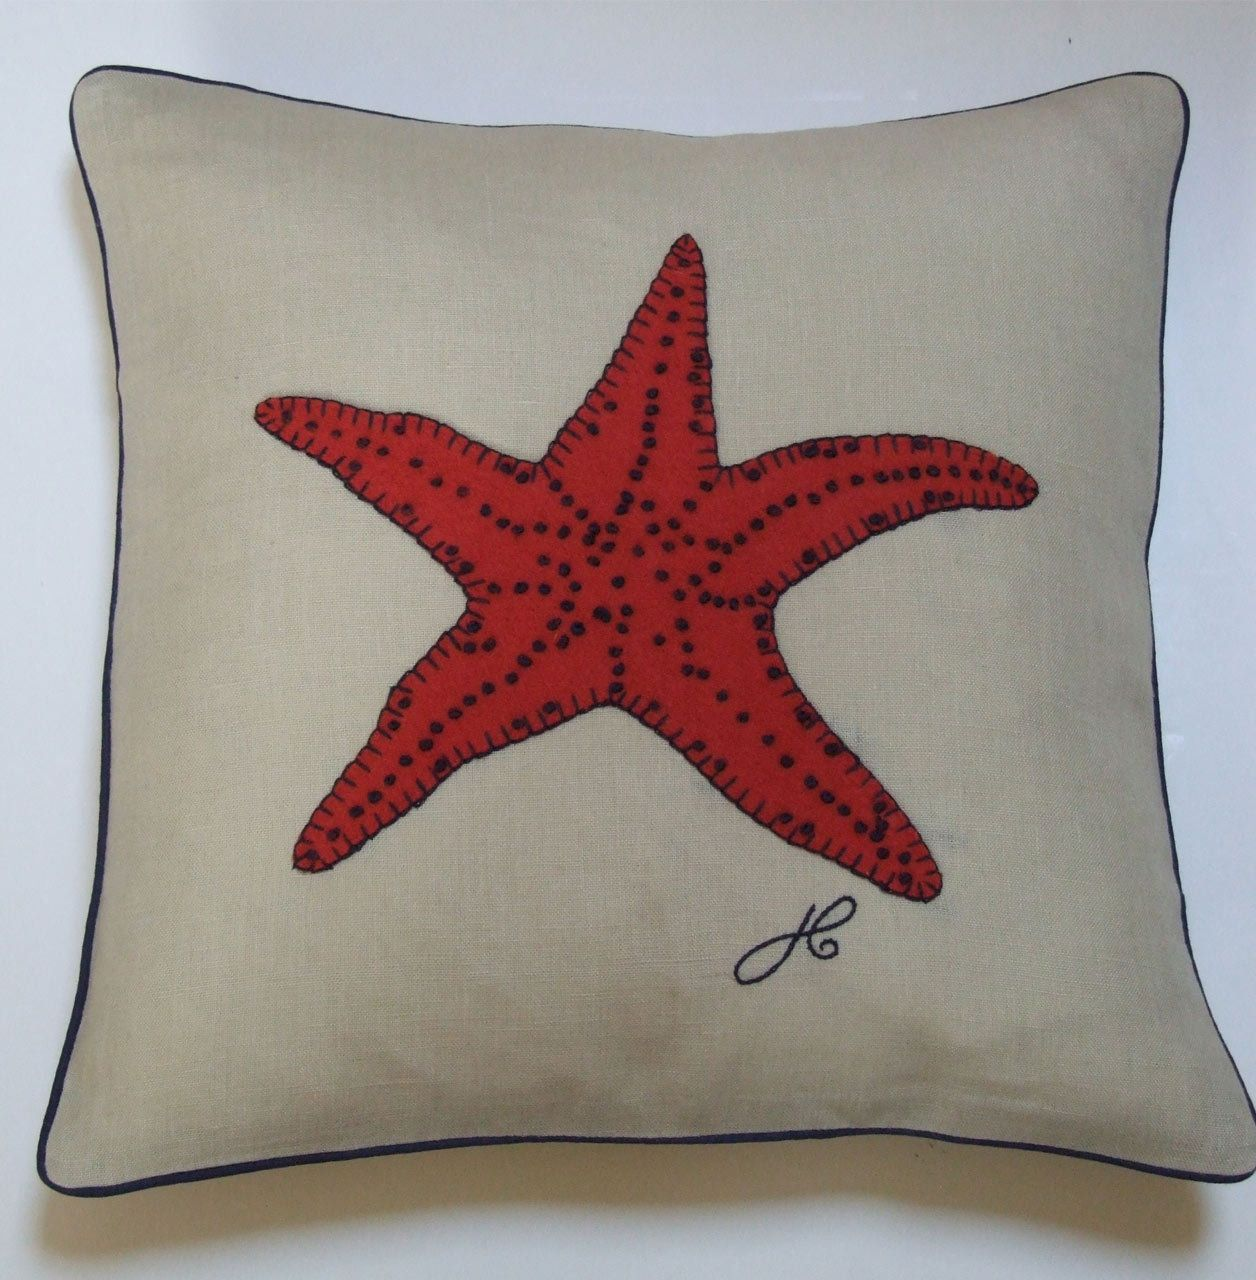 Mini Star Fish Cushion - Jan Constantine